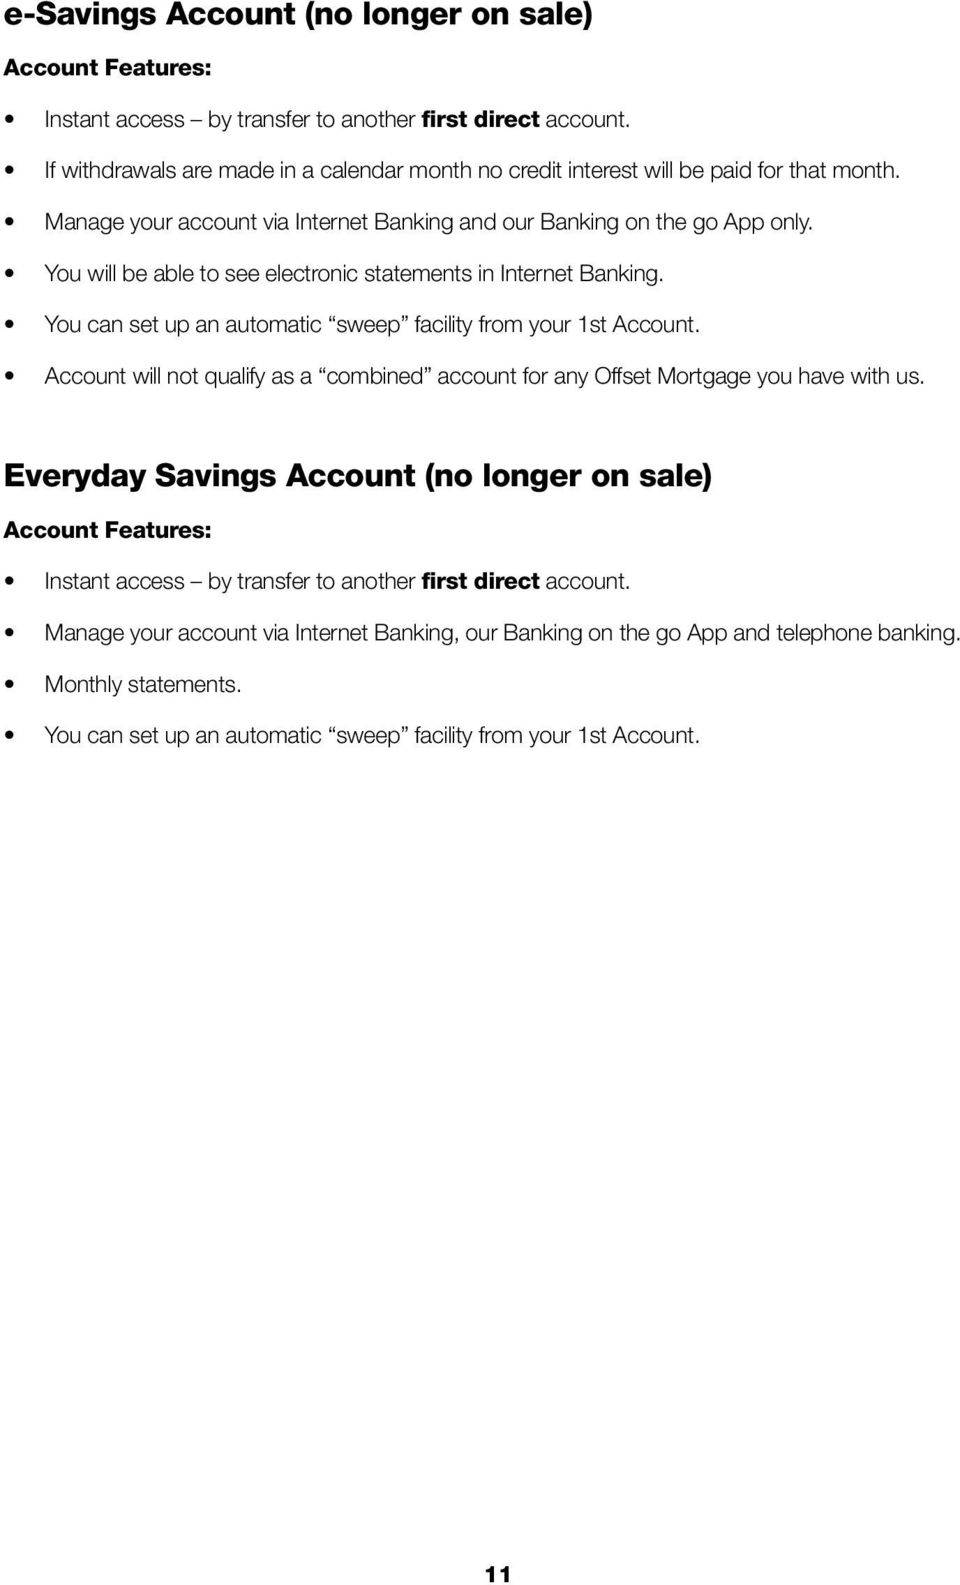 Everyday Savings Account (no longer on